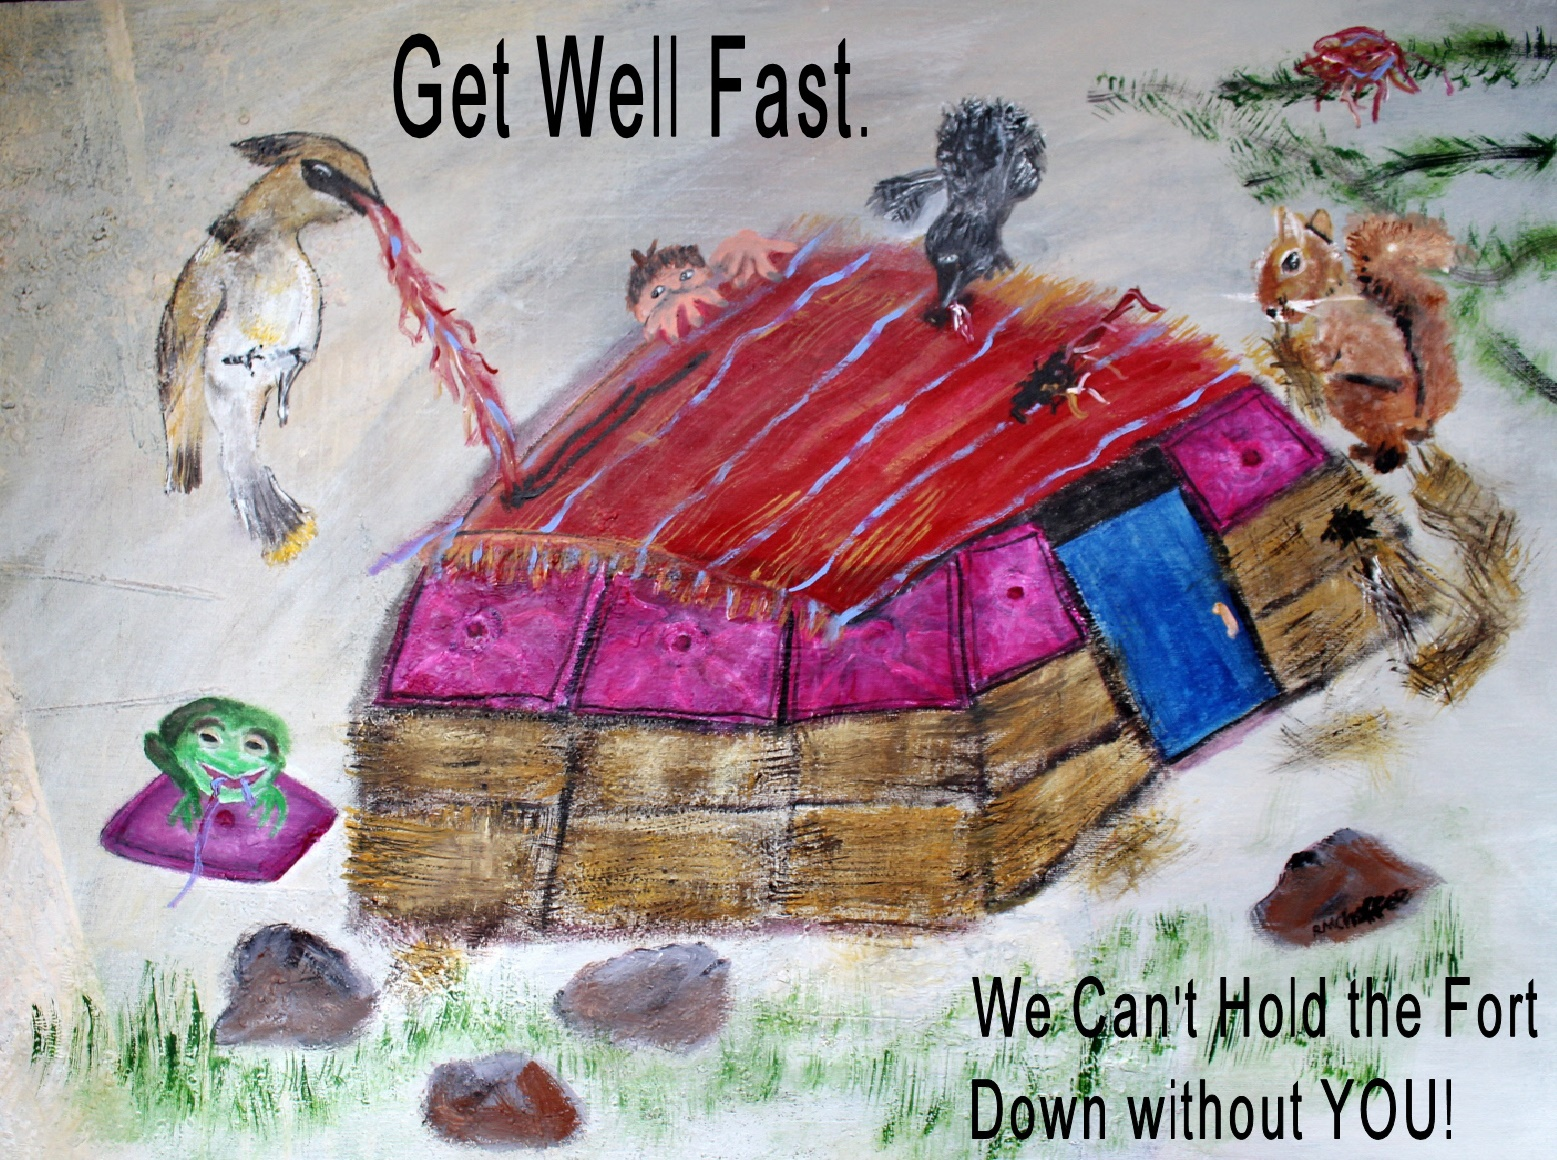 Get Well - Feel Better Cards - Miscellaneous Greeting Cards are also Great for Inspiration.